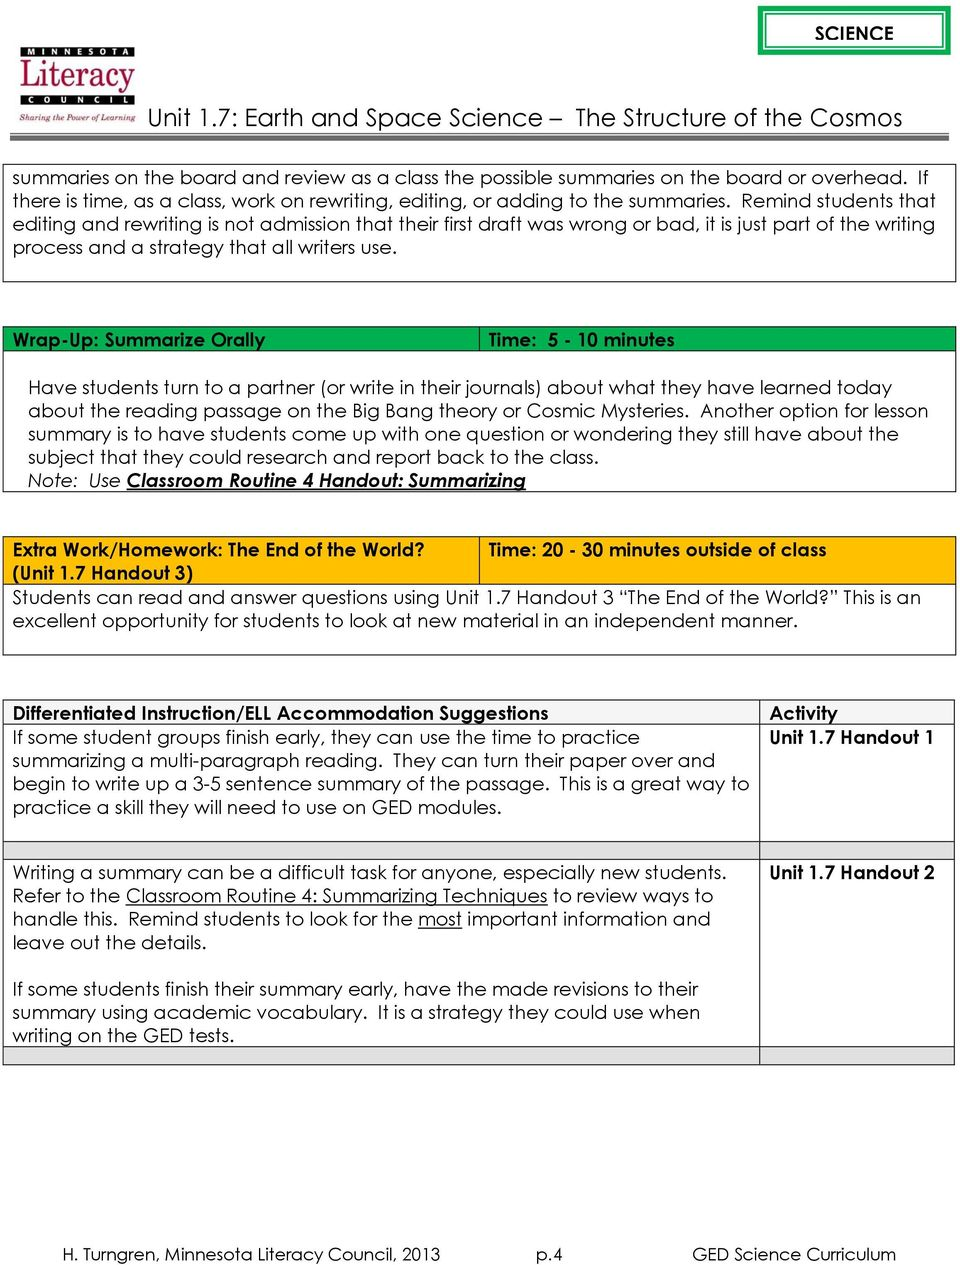 Wrap-Up: Summarize Orally Time: 5-10 minutes Have students turn to a partner (or write in their journals) about what they have learned today about the reading passage on the Big Bang theory or Cosmic